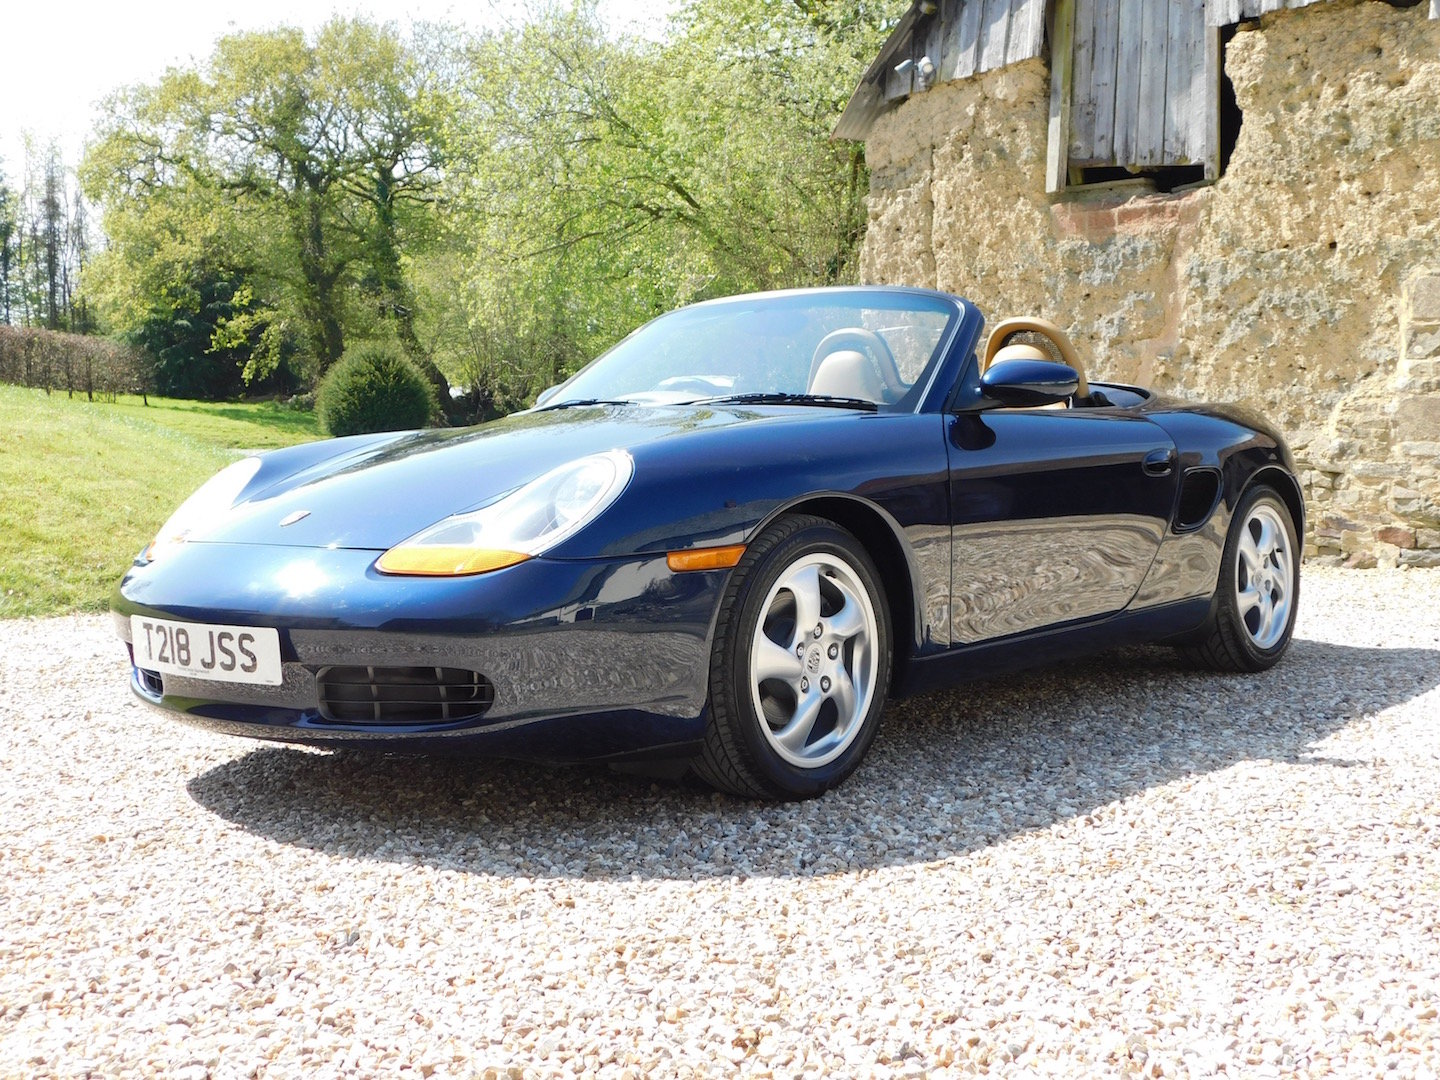 1999 Porsche Boxster 2.5 manual - 16k miles, 2 owners, incredible SOLD (picture 4 of 6)